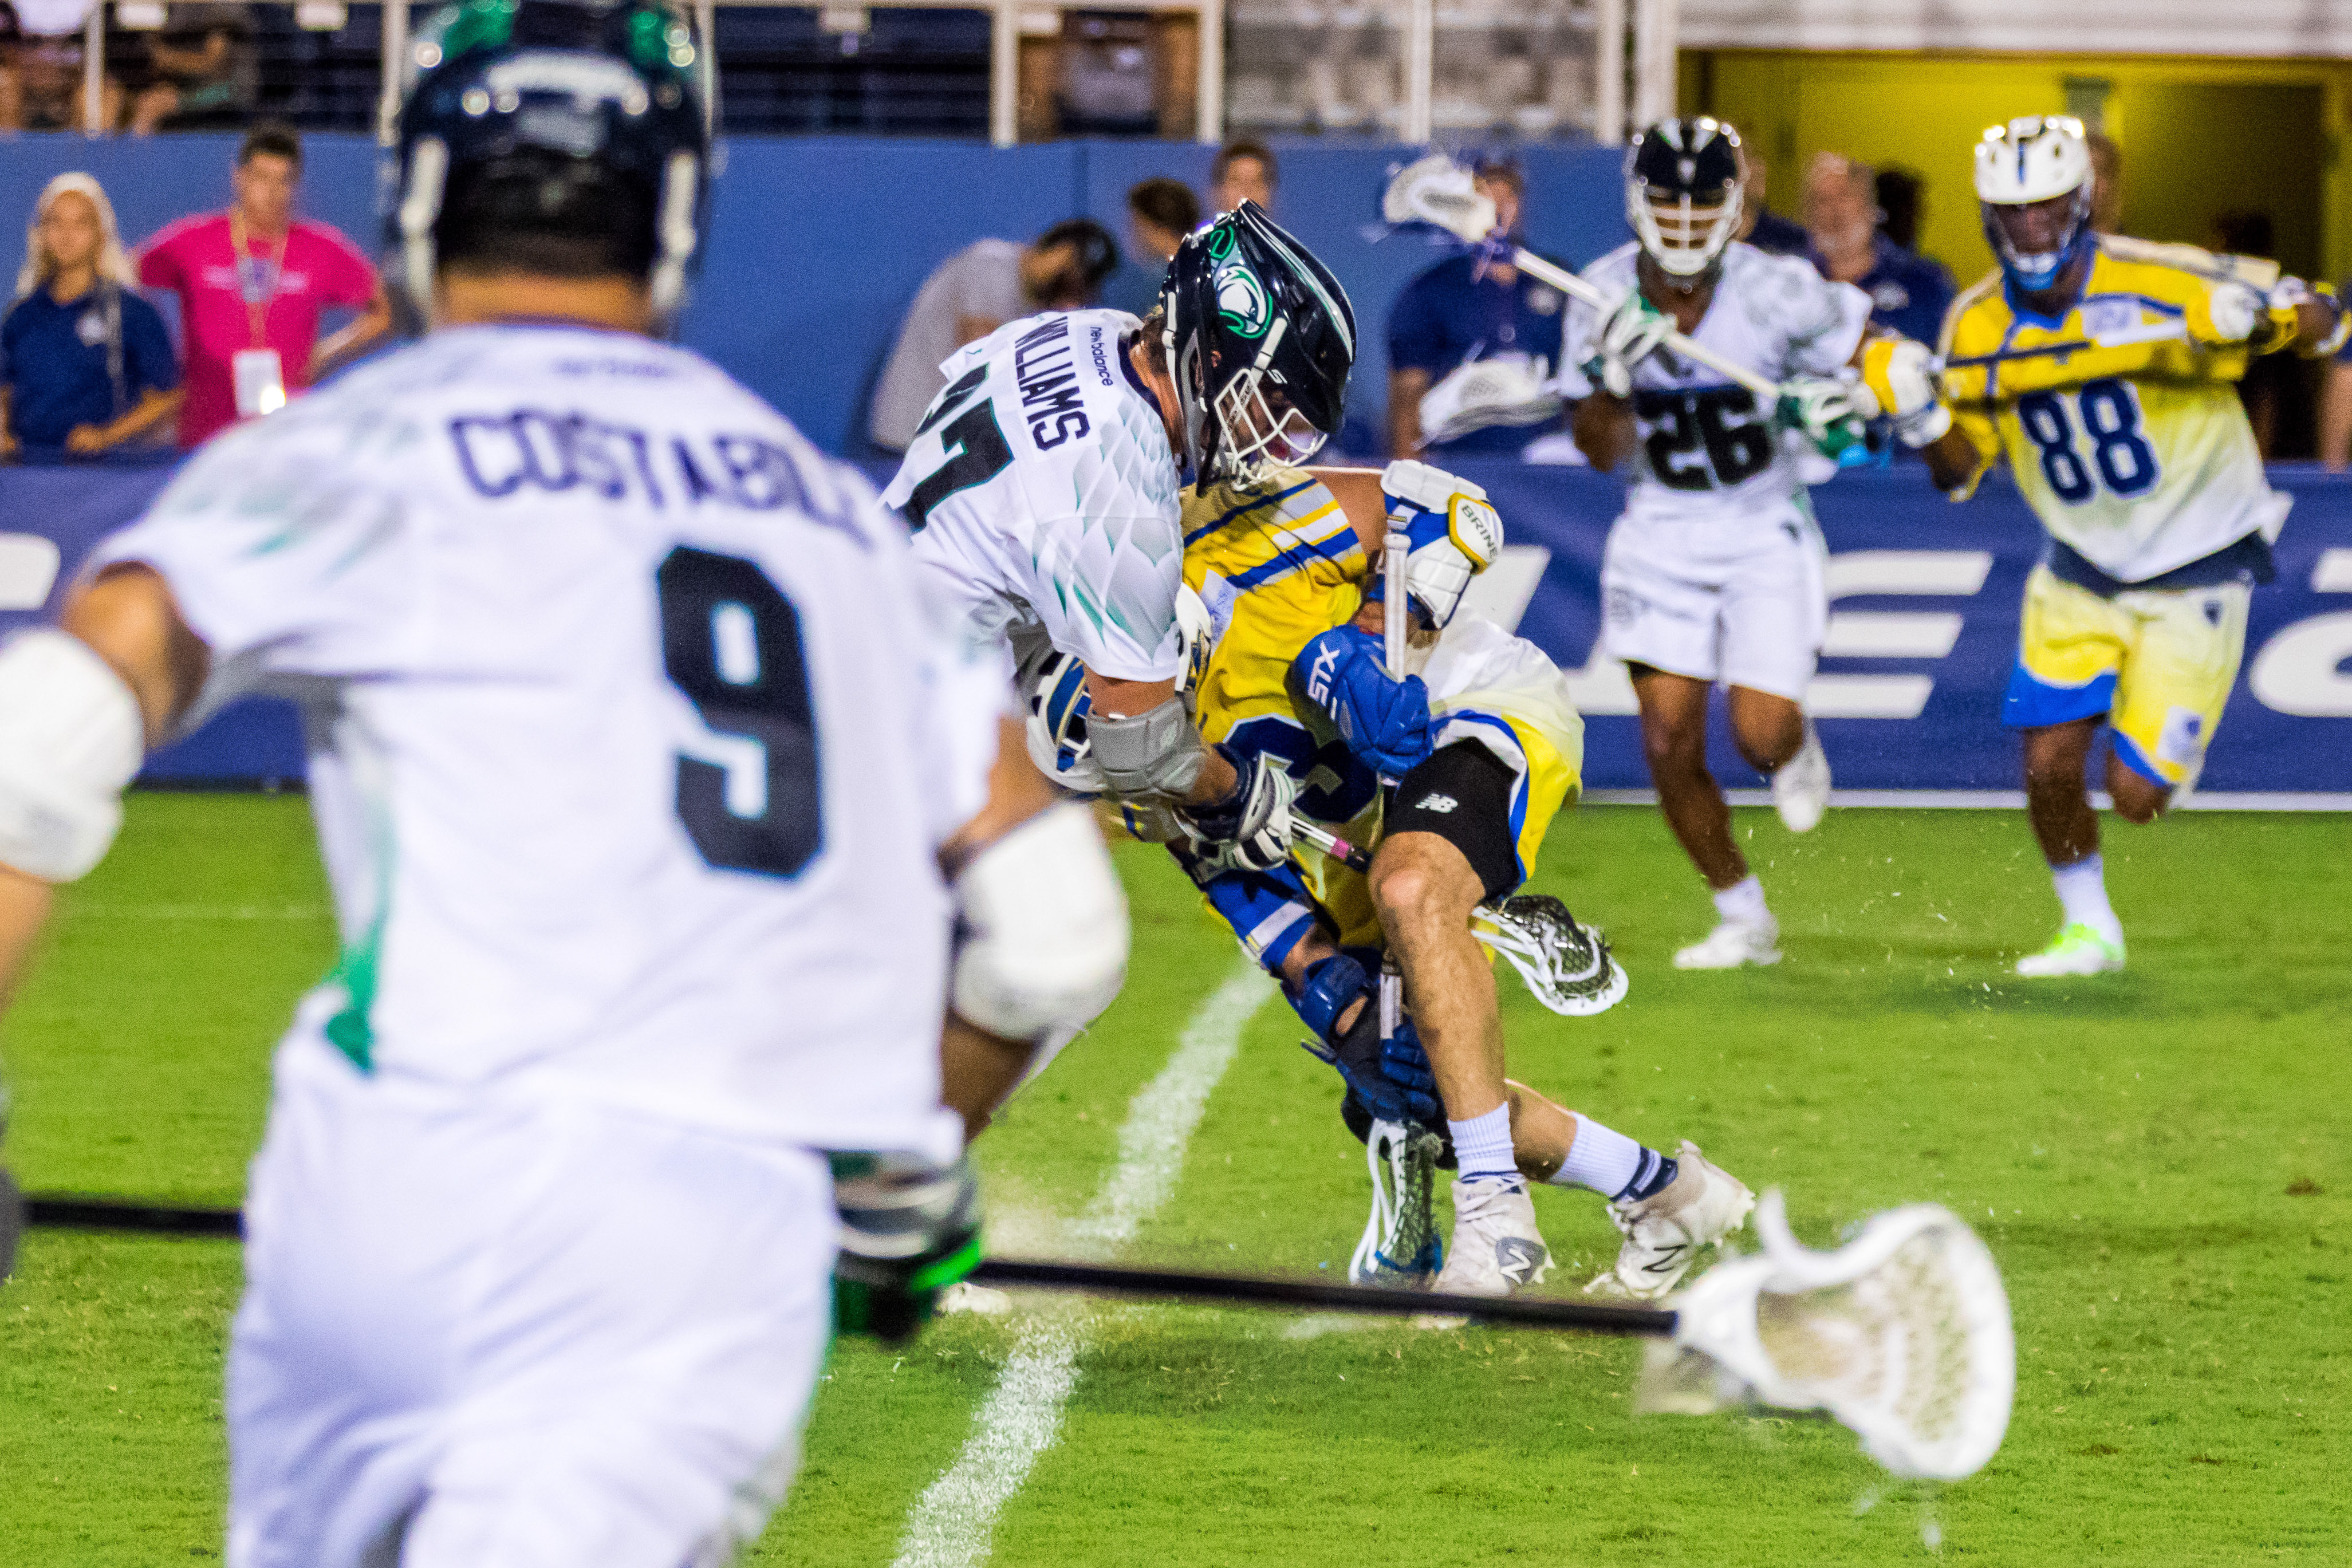 July 15, 2017; Boca Raton, FL, USA; Chesapeake Bayhawks @ Florida Launch at FAU Stadium. Photography Credit: Lawrence Ream